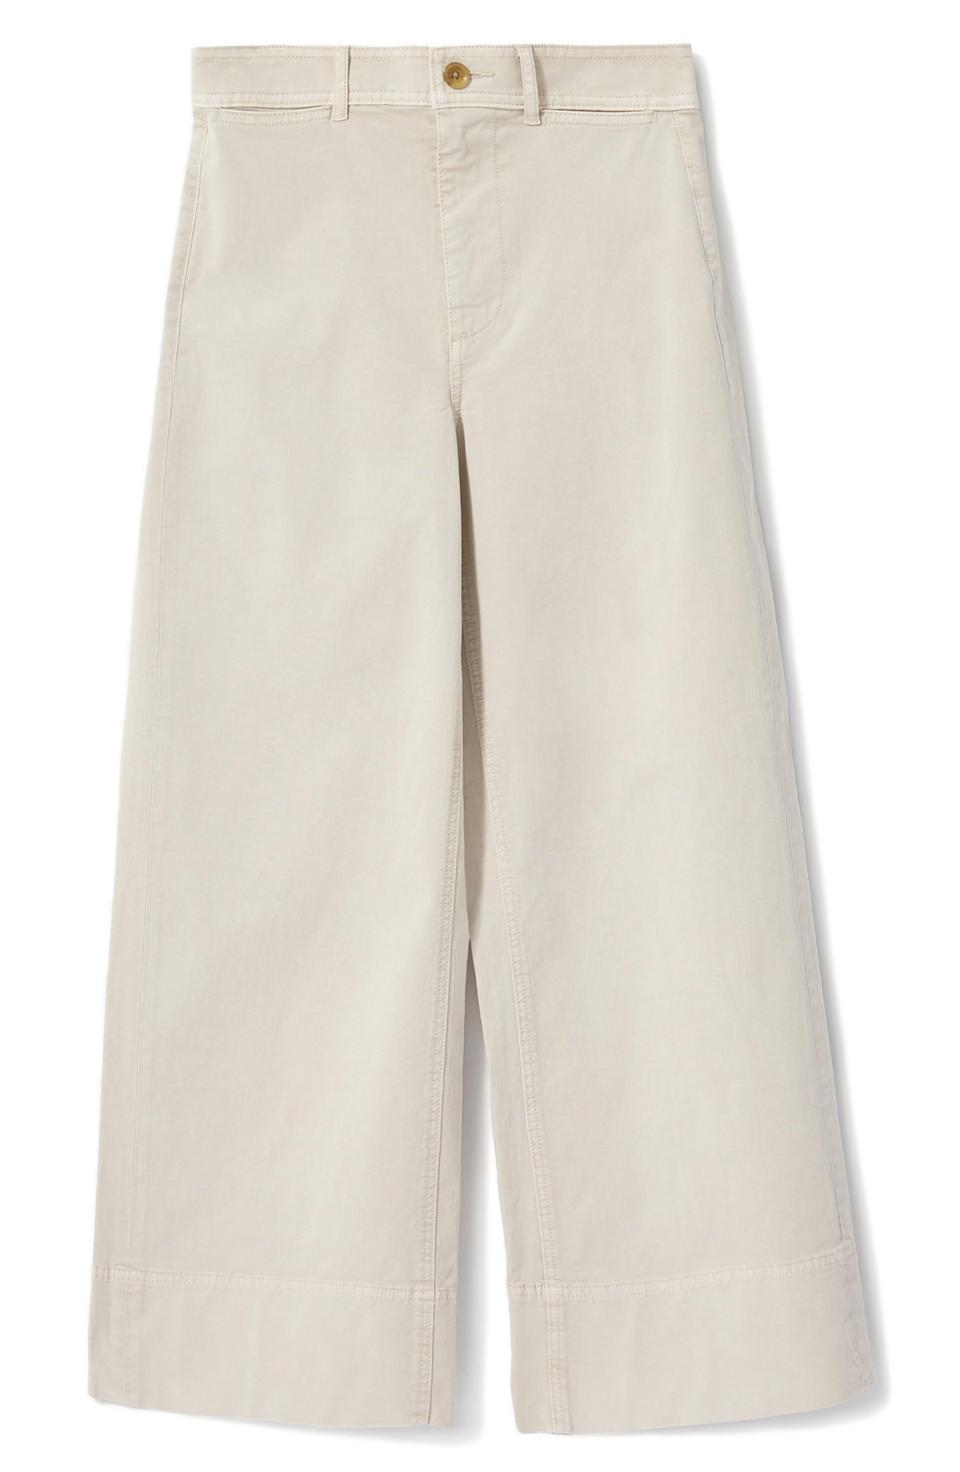 """<p><strong>EVERLANE</strong></p><p>nordstrom.com</p><p><strong>$35.90</strong></p><p><a href=""""https://go.redirectingat.com?id=74968X1596630&url=https%3A%2F%2Fwww.nordstrom.com%2Fs%2Feverlane-the-lightweight-wide-leg-crop-stretch-cotton-pants%2F5778277&sref=https%3A%2F%2Fwww.elle.com%2Ffashion%2Fshopping%2Fg34741930%2Fnordstrom-12-days-of-cyber-savings-sale%2F"""" rel=""""nofollow noopener"""" target=""""_blank"""" data-ylk=""""slk:Shop Now"""" class=""""link rapid-noclick-resp"""">Shop Now</a></p>"""